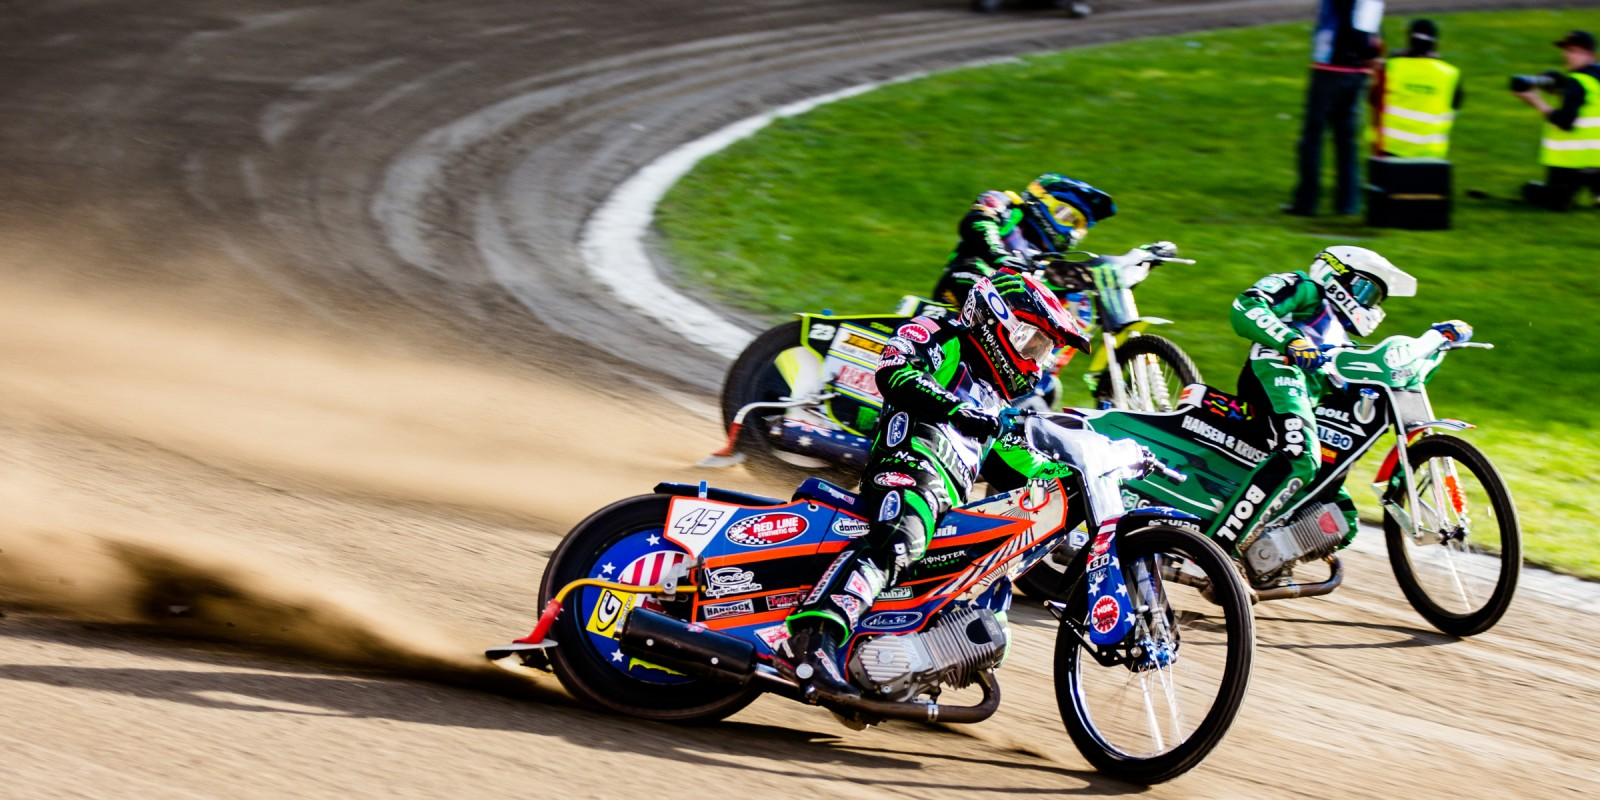 Chris Holder and Greg Hancock power to victory in Speedway Best Pairs Round One, Round 1